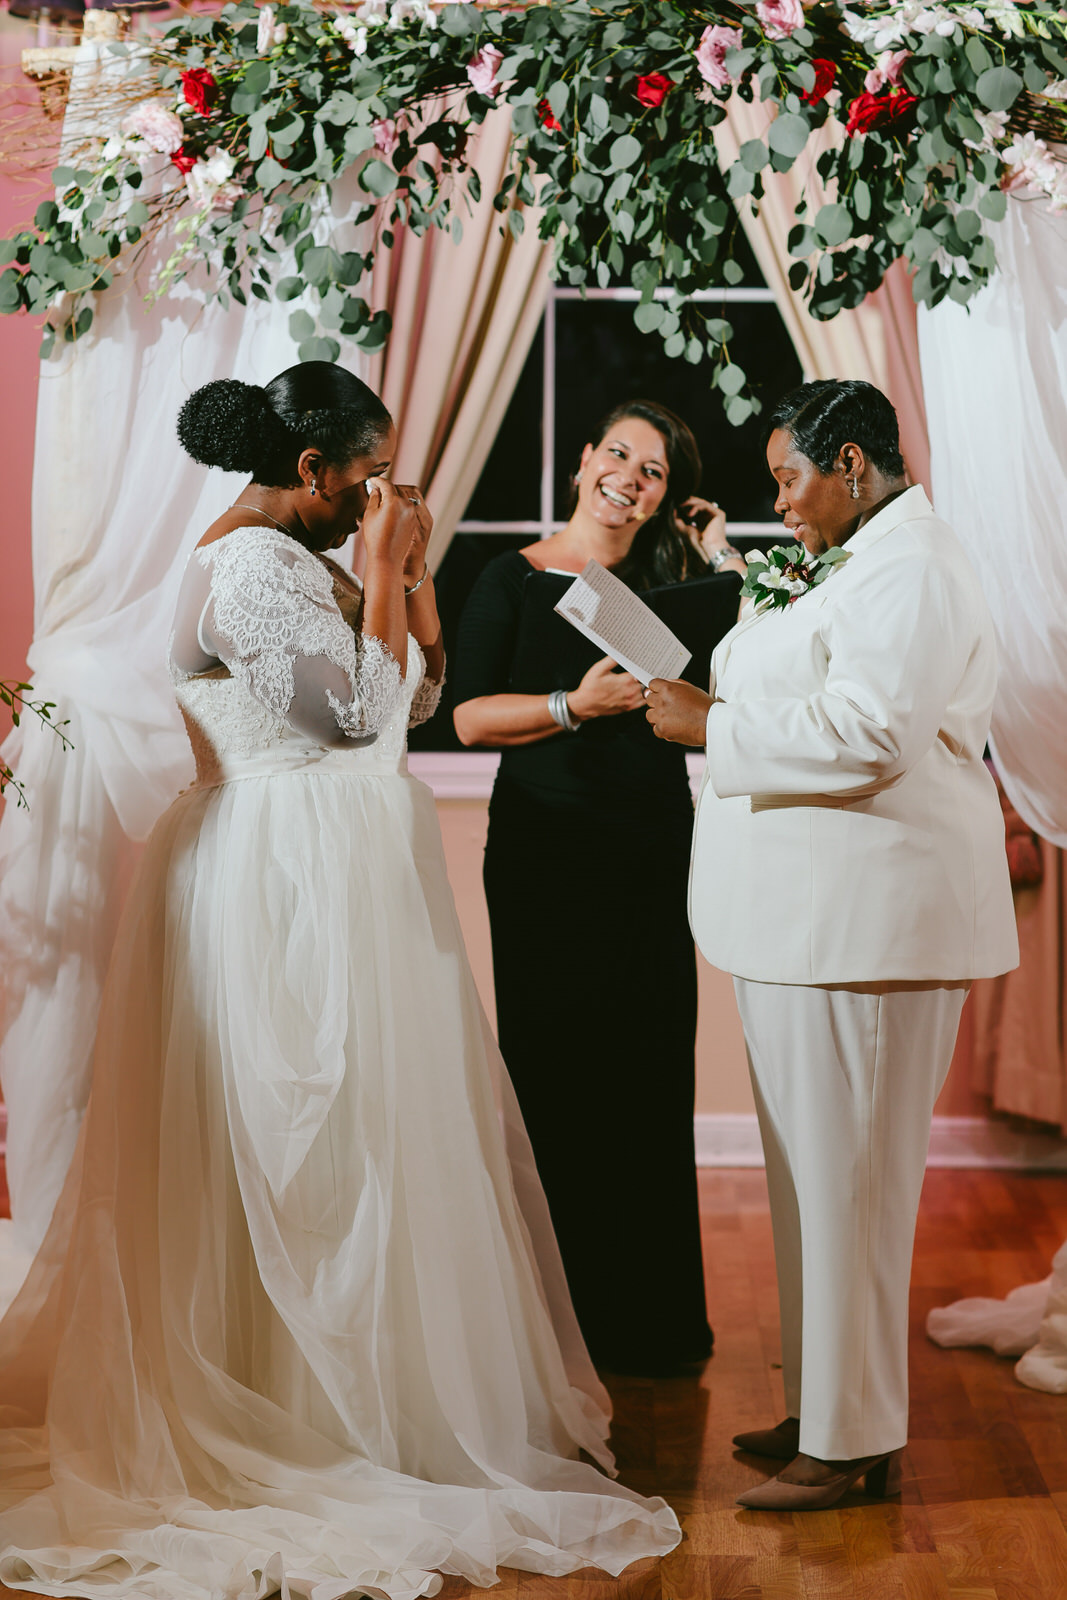 Emotional_Wedding_Vows_Ceremony_Tiny_House_Photo_Same_Sex_Photographer.jpg